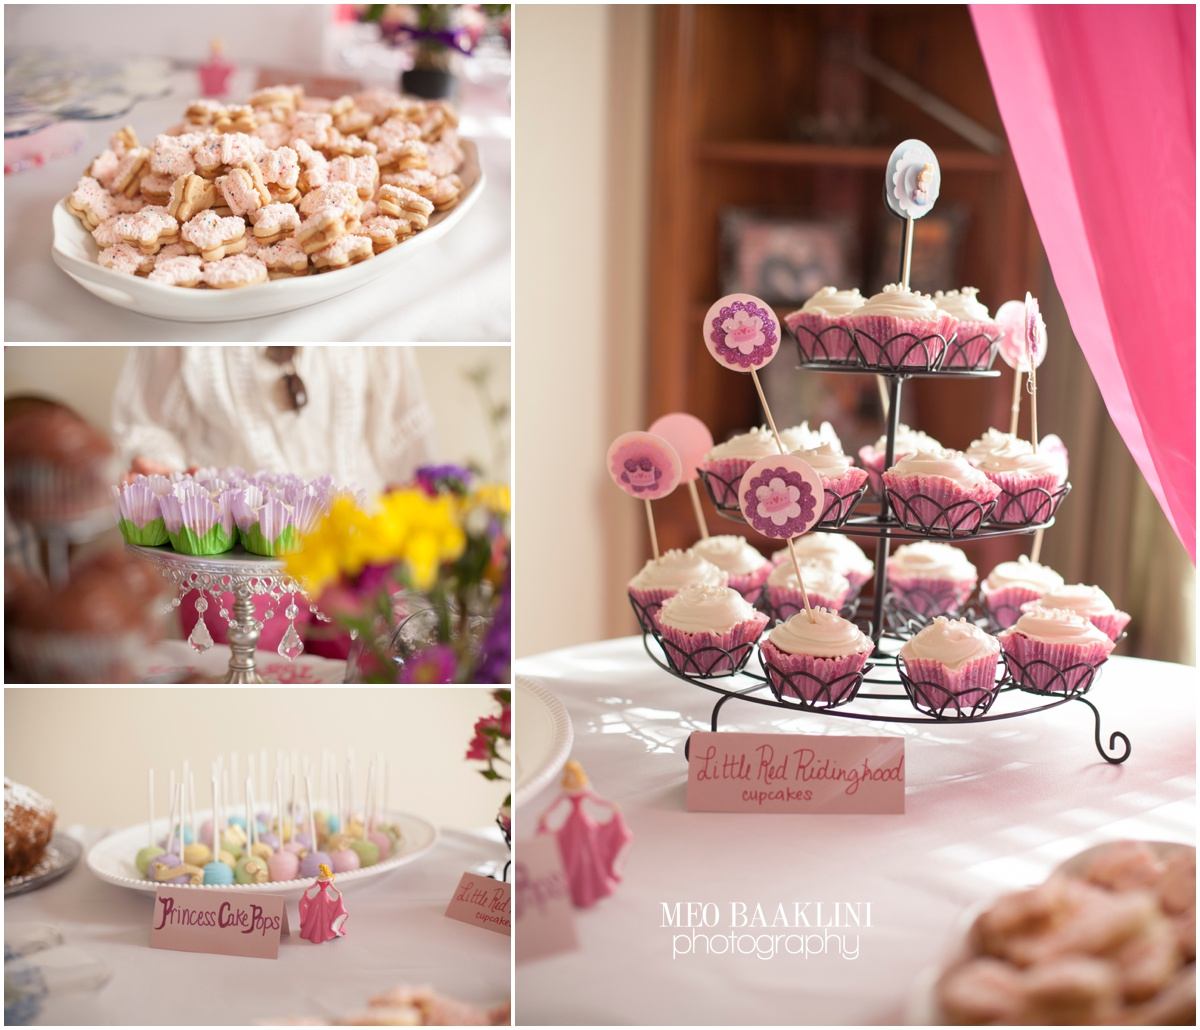 Baby-Shower-Inspiration-Once-Upon-A-Time-Disney_0023